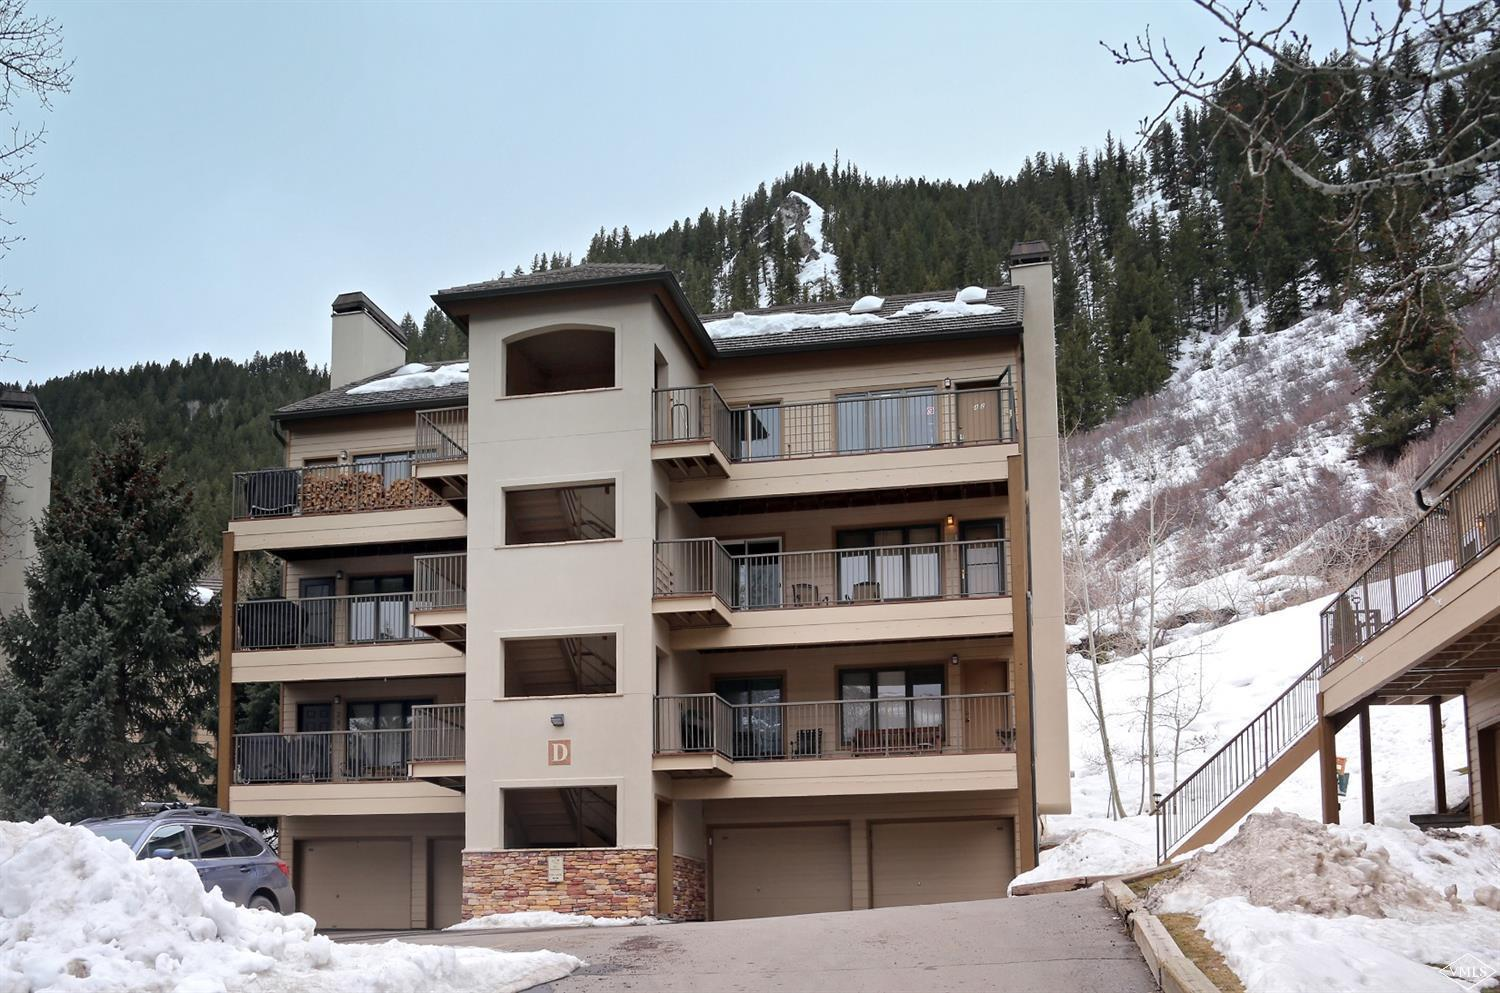 Very nice 2-bedroom, 2-bath condominium in River Oaks Condominiums and just 1/2 mile east of Beaver Creek entry. New engineered wood floors, new paint, and new stove. Includes a over sized one car garage with great shared storage.